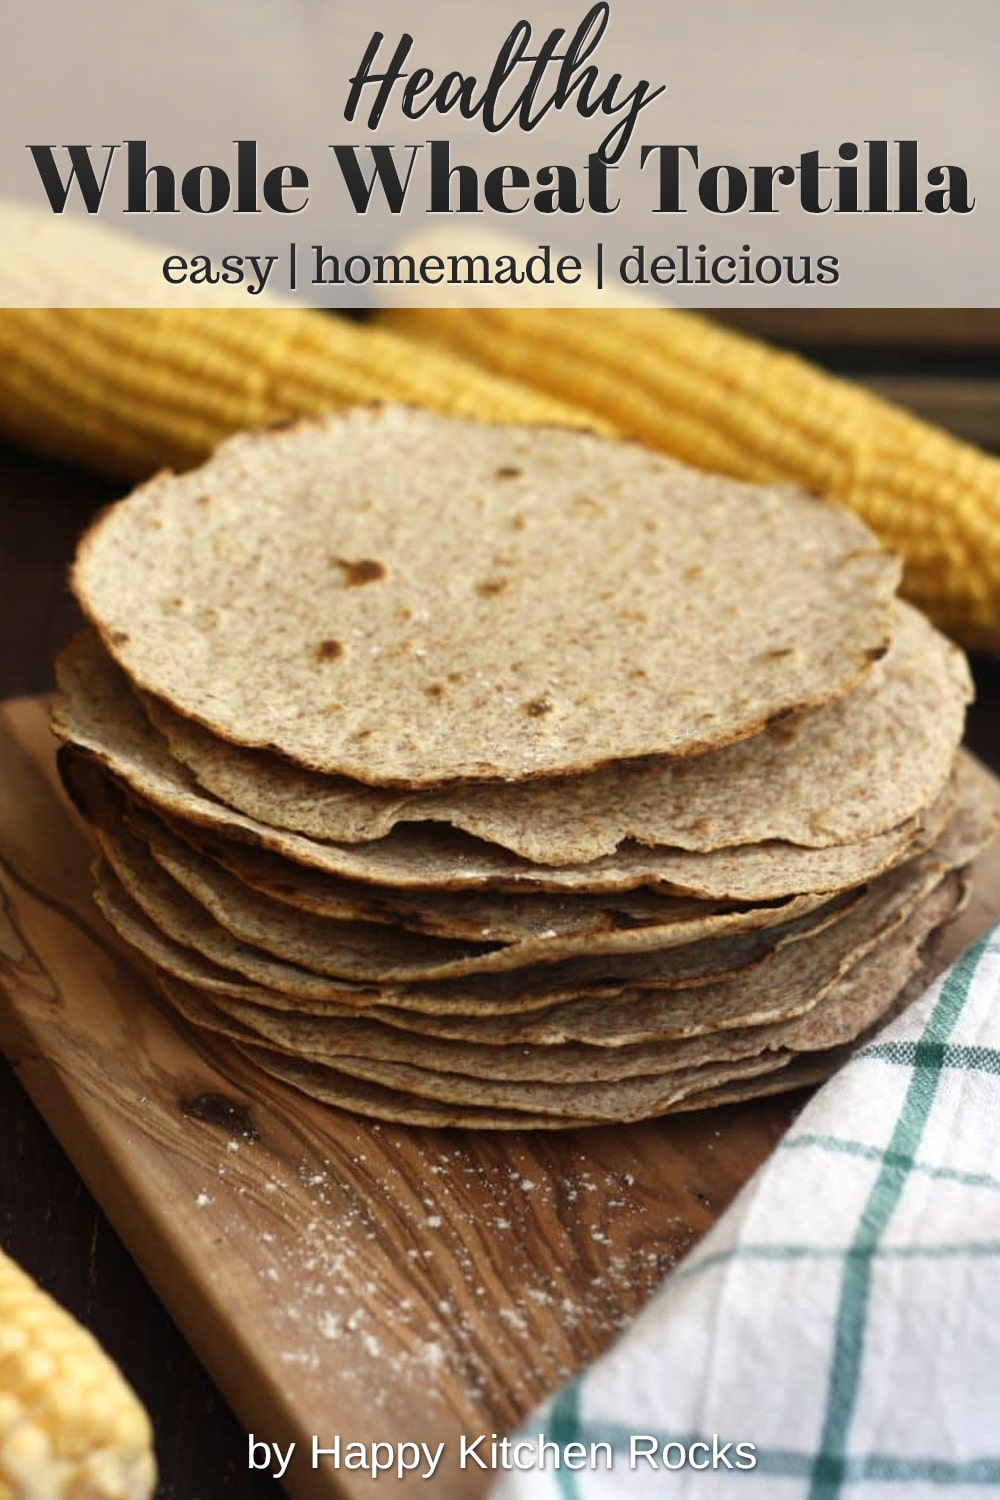 Homemade Whole Wheat Tortilla Closeup Collage with Text Overlay